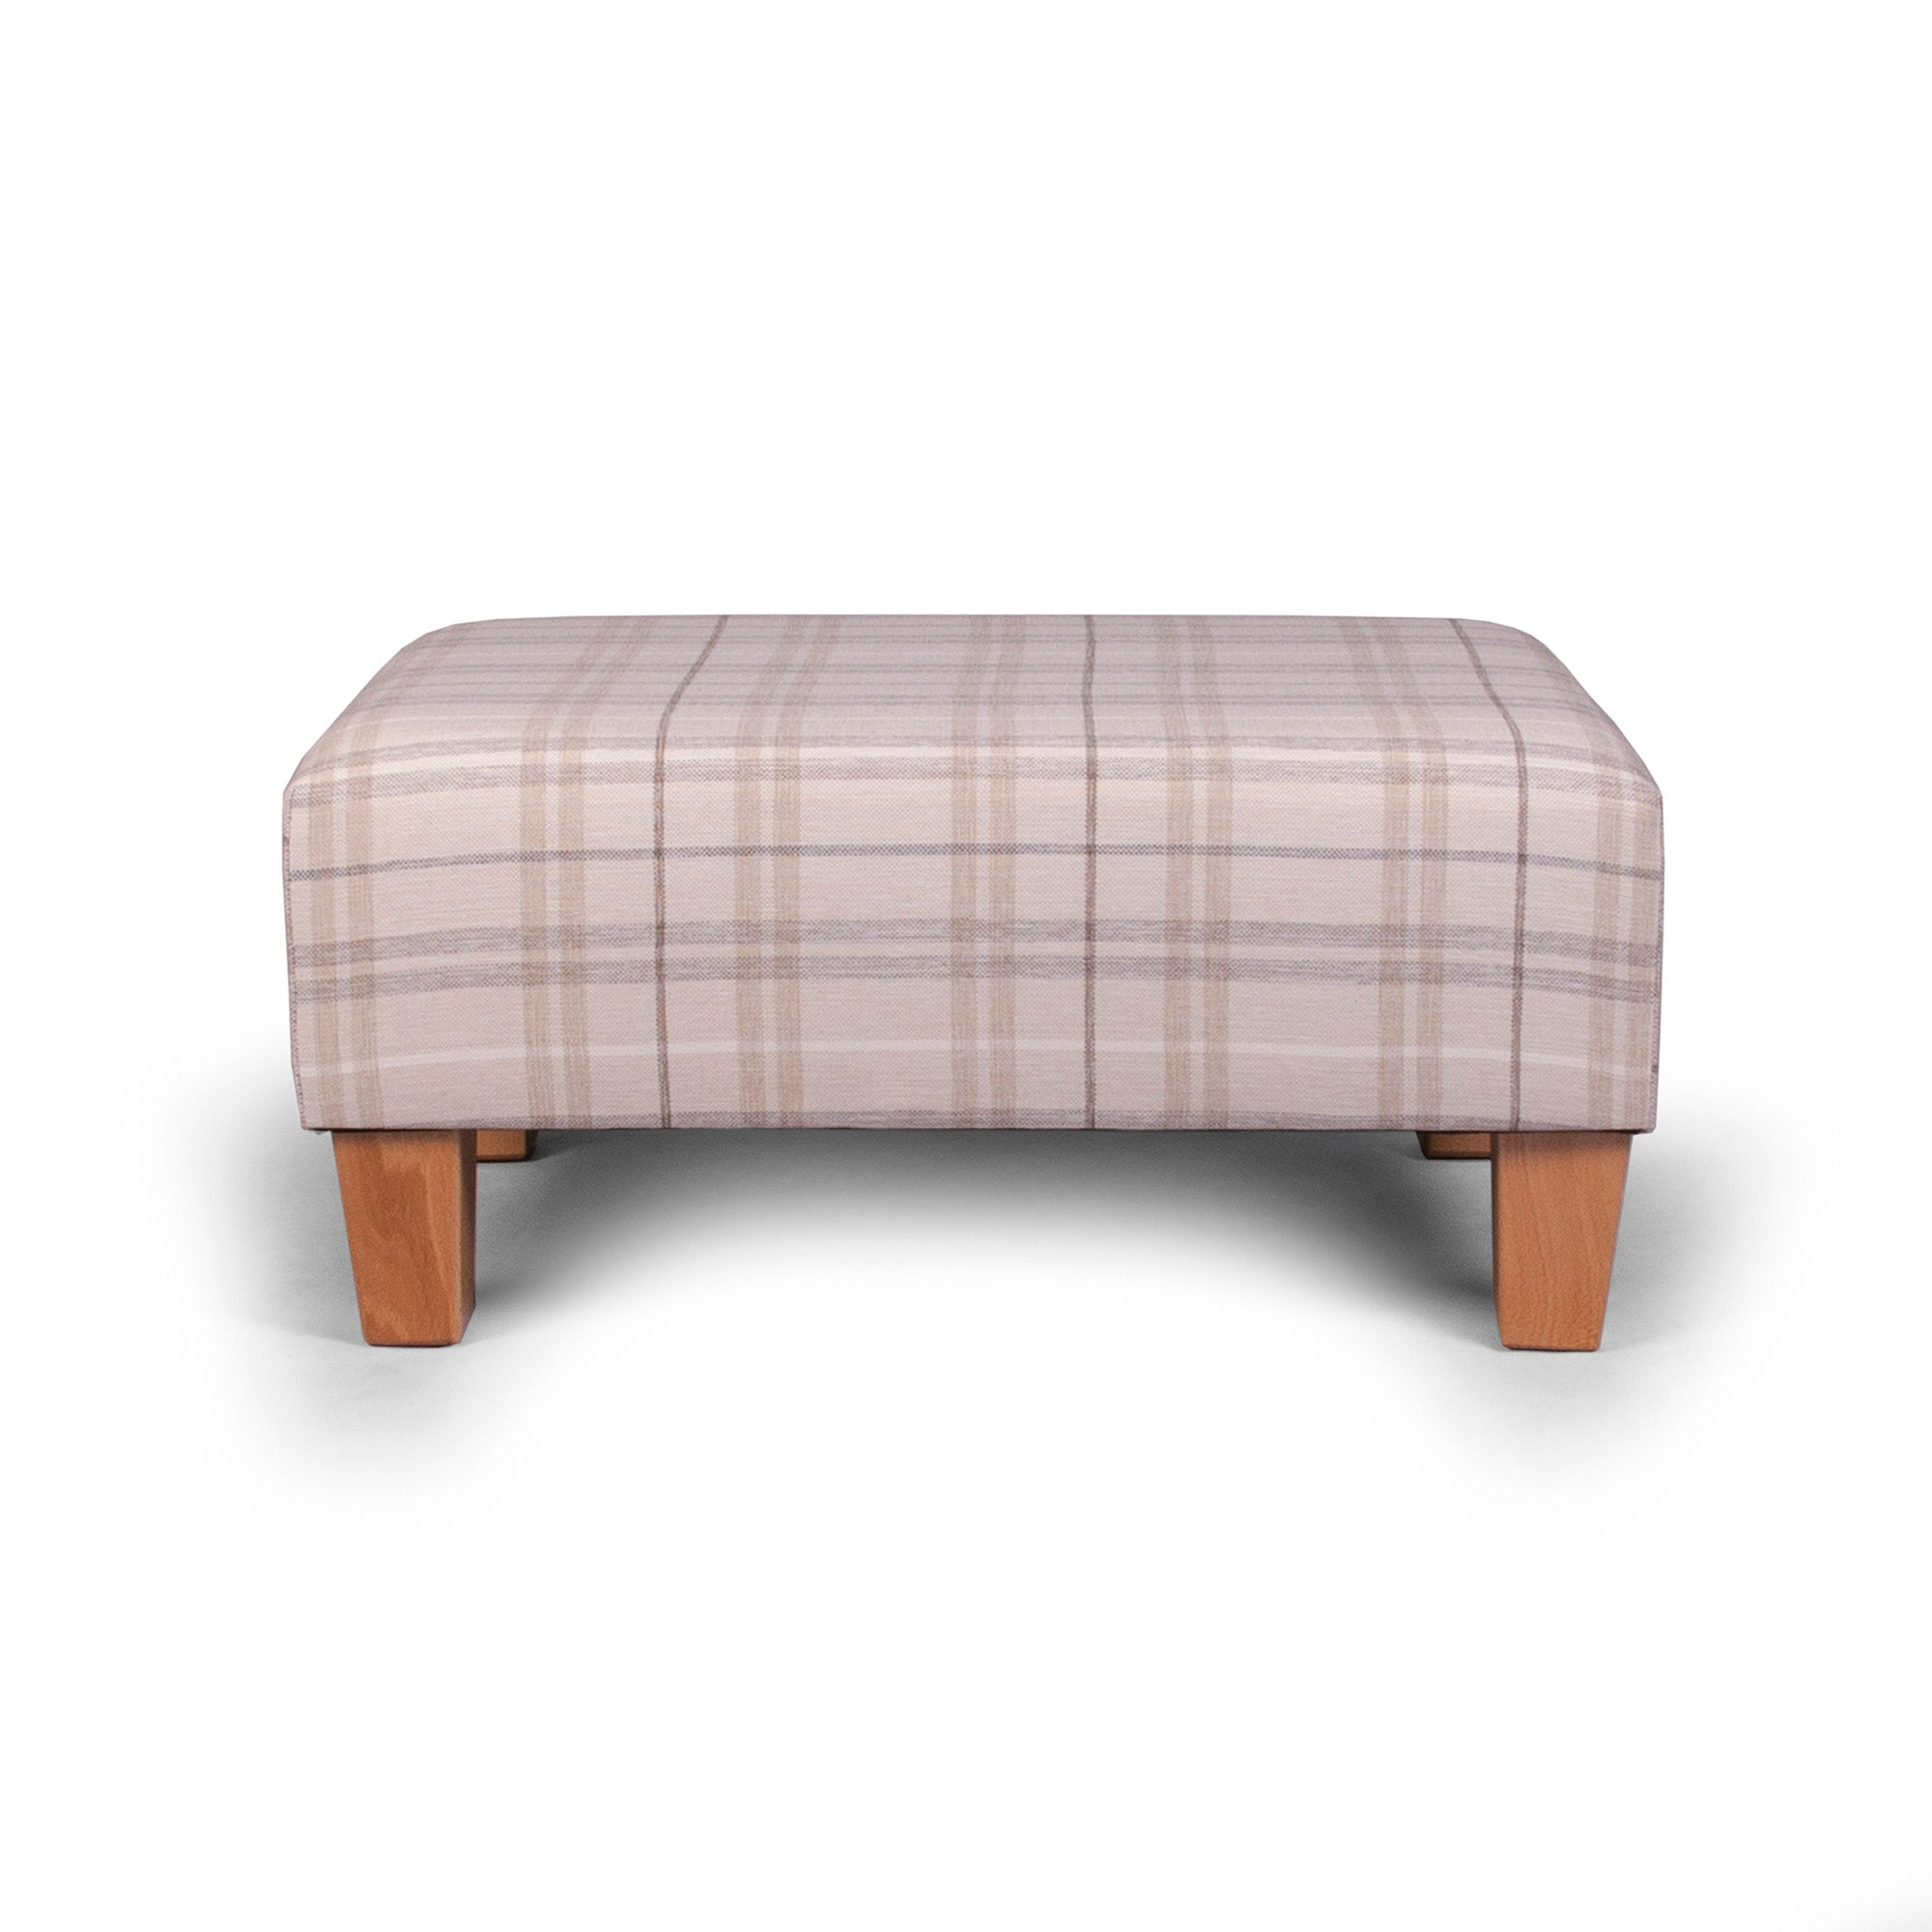 Adele Check Footstool